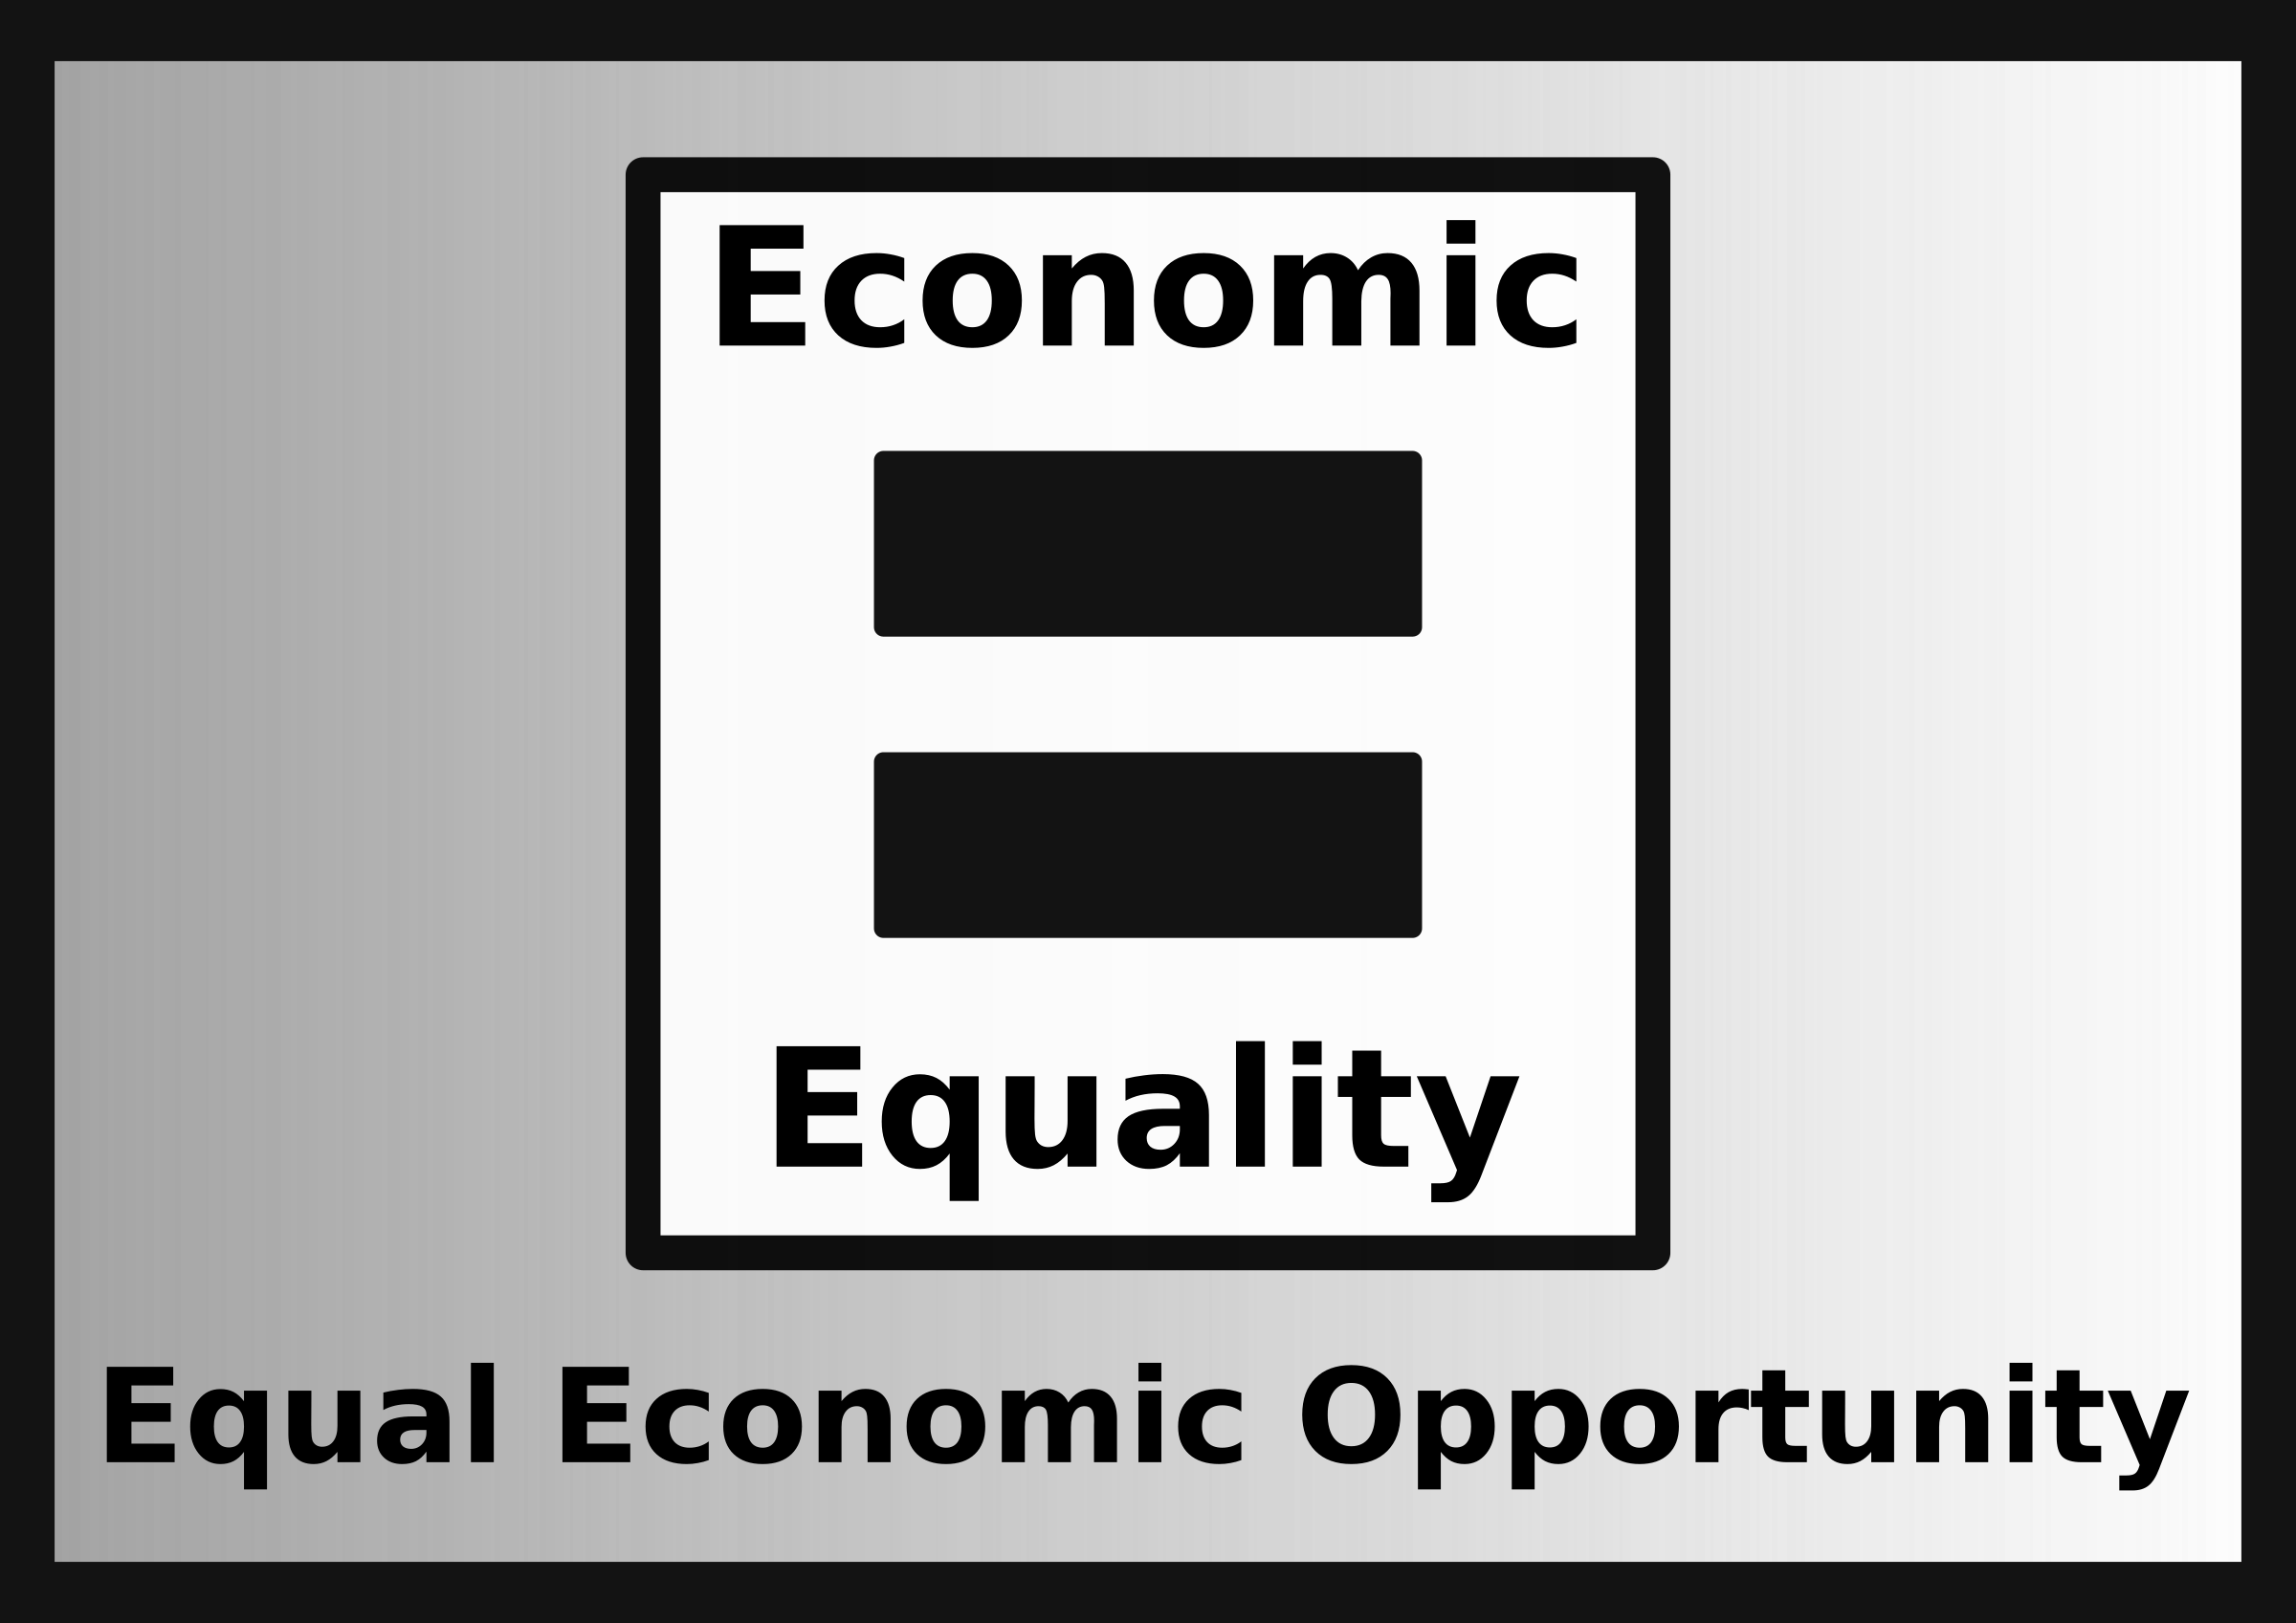 Equal Economic Opportunity by zerozip